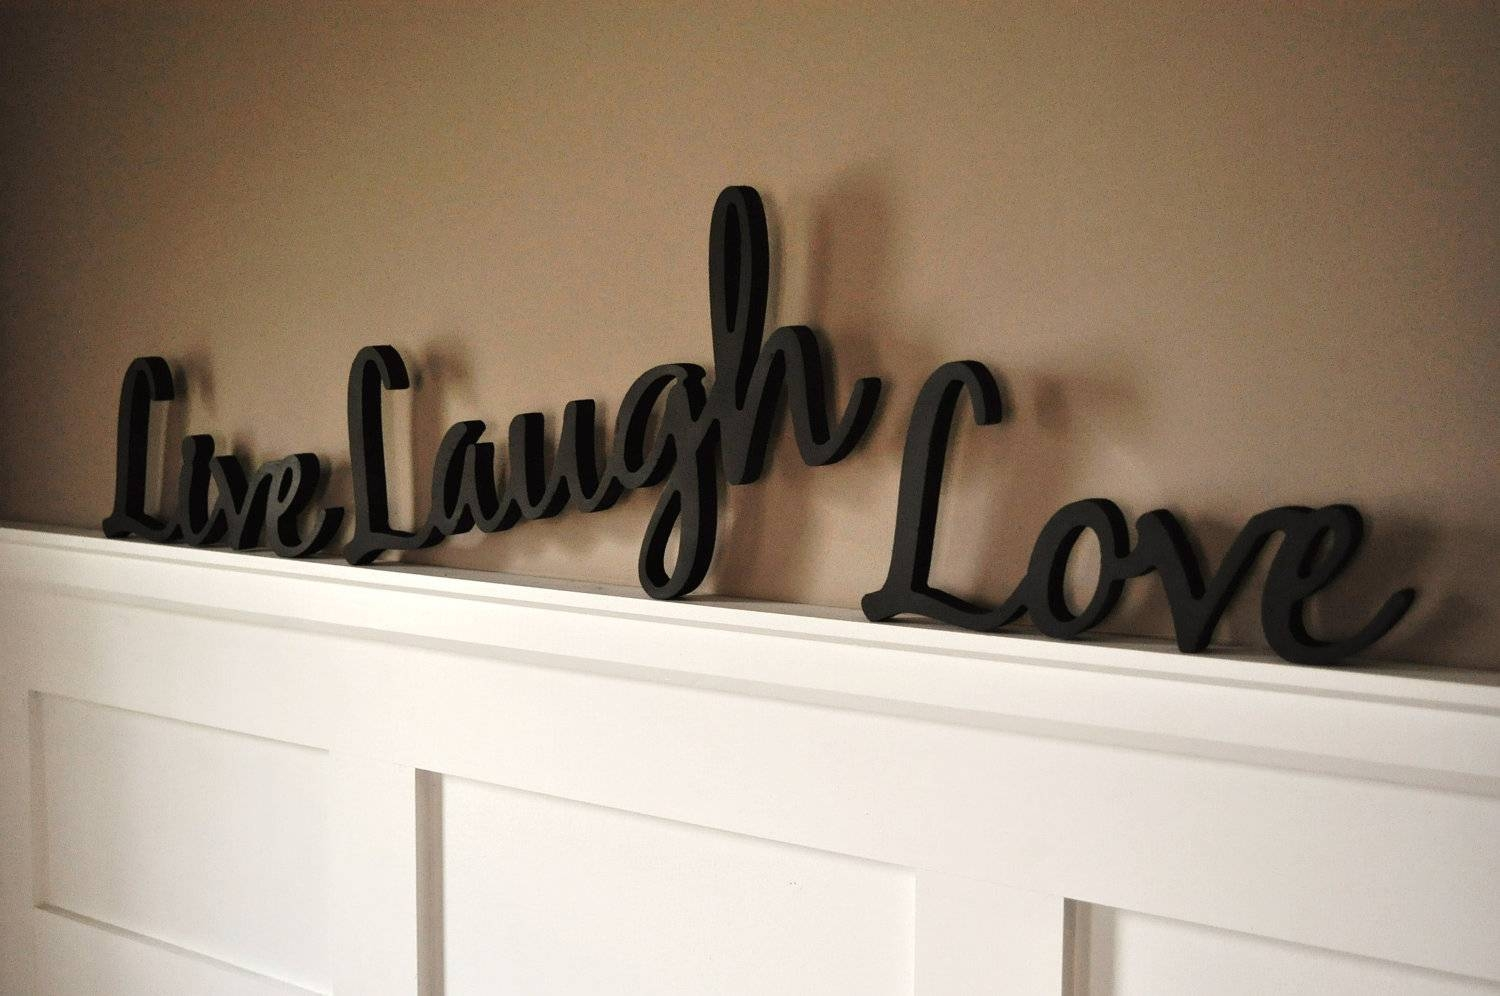 Wooden Words Home Decorcustom Wooden Letters Names Words Wall With Regard To Recent Wooden Word Wall Art (View 5 of 30)